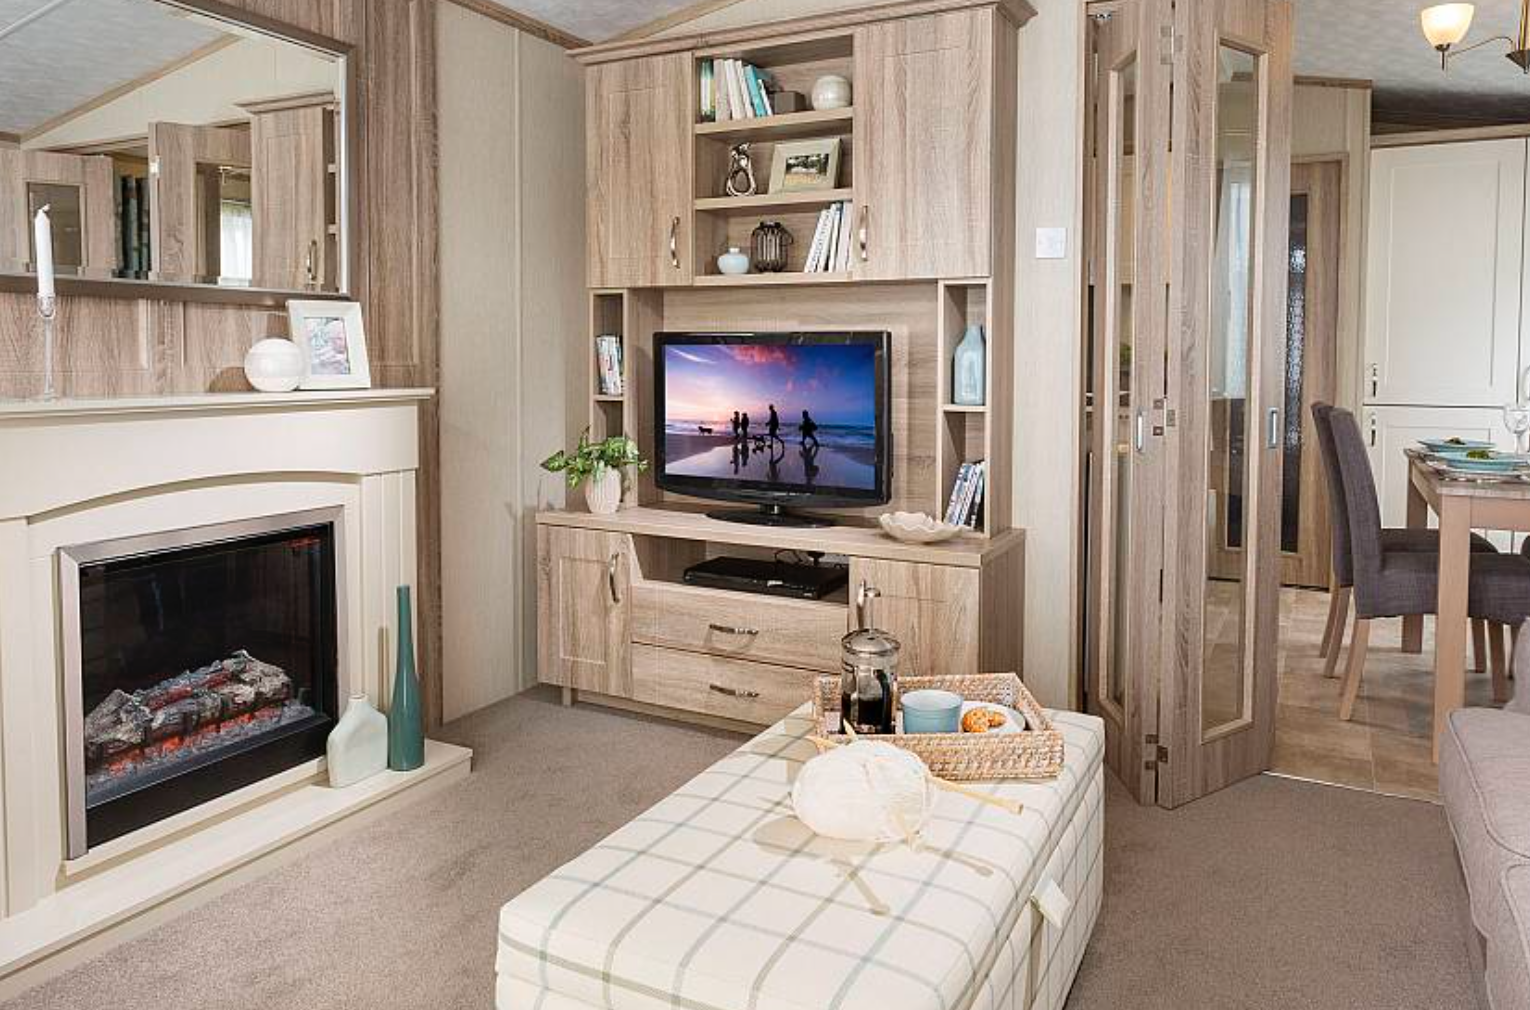 caravan site lincolnshire, dog friendly glamping, holiday park lincolnshire